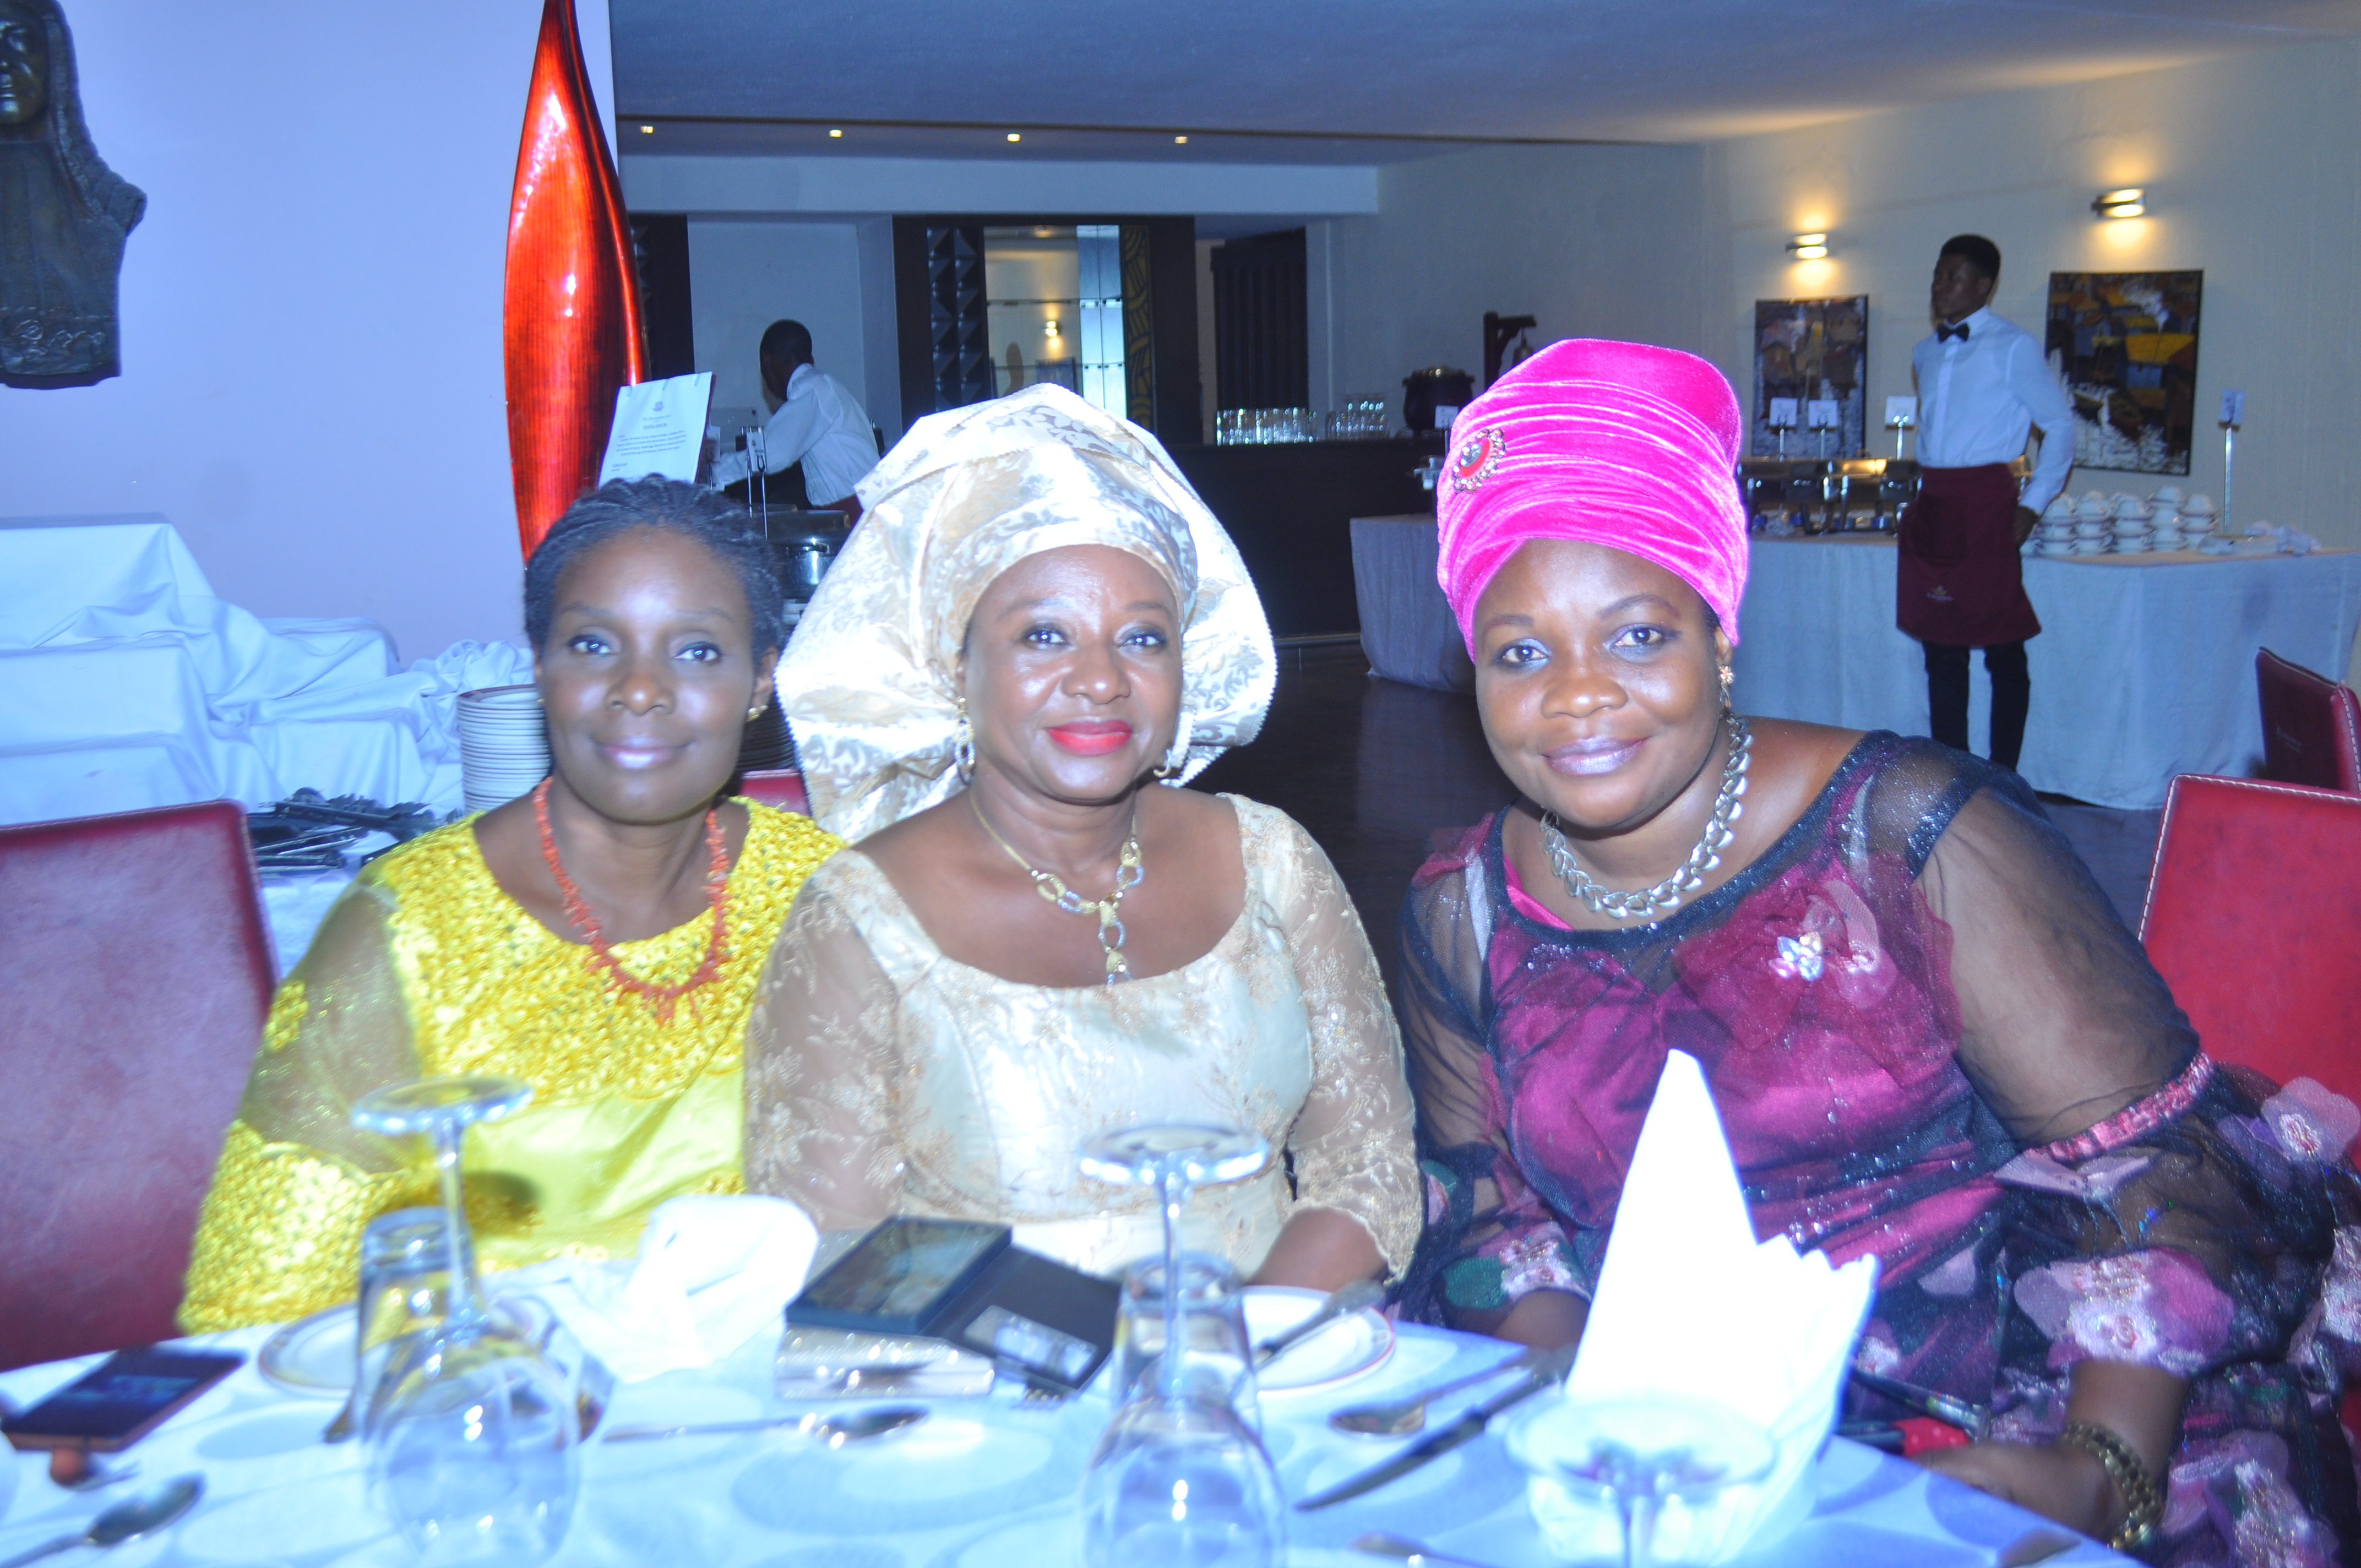 Some wivies of Ecobites at the event. L-R Mrs Odiase, Mrs Mina Ize-Iyamu and Mrs Funlola Igbinidu